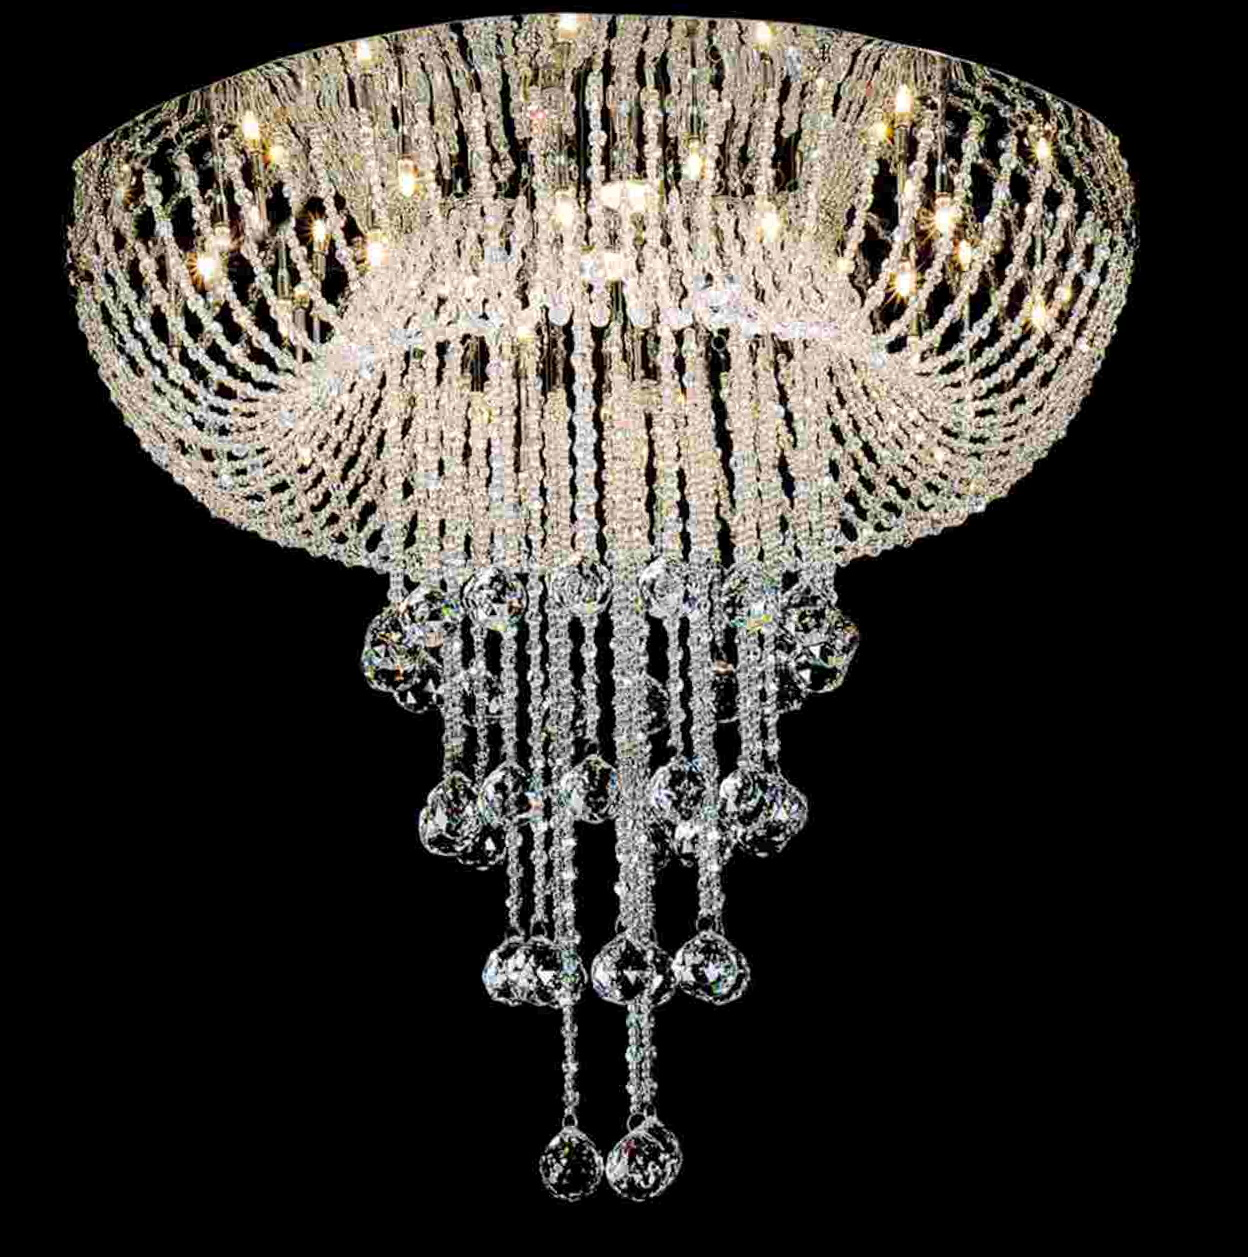 Modern crystal chandeliers on sale home design ideas - Chandeliers on sale online ...